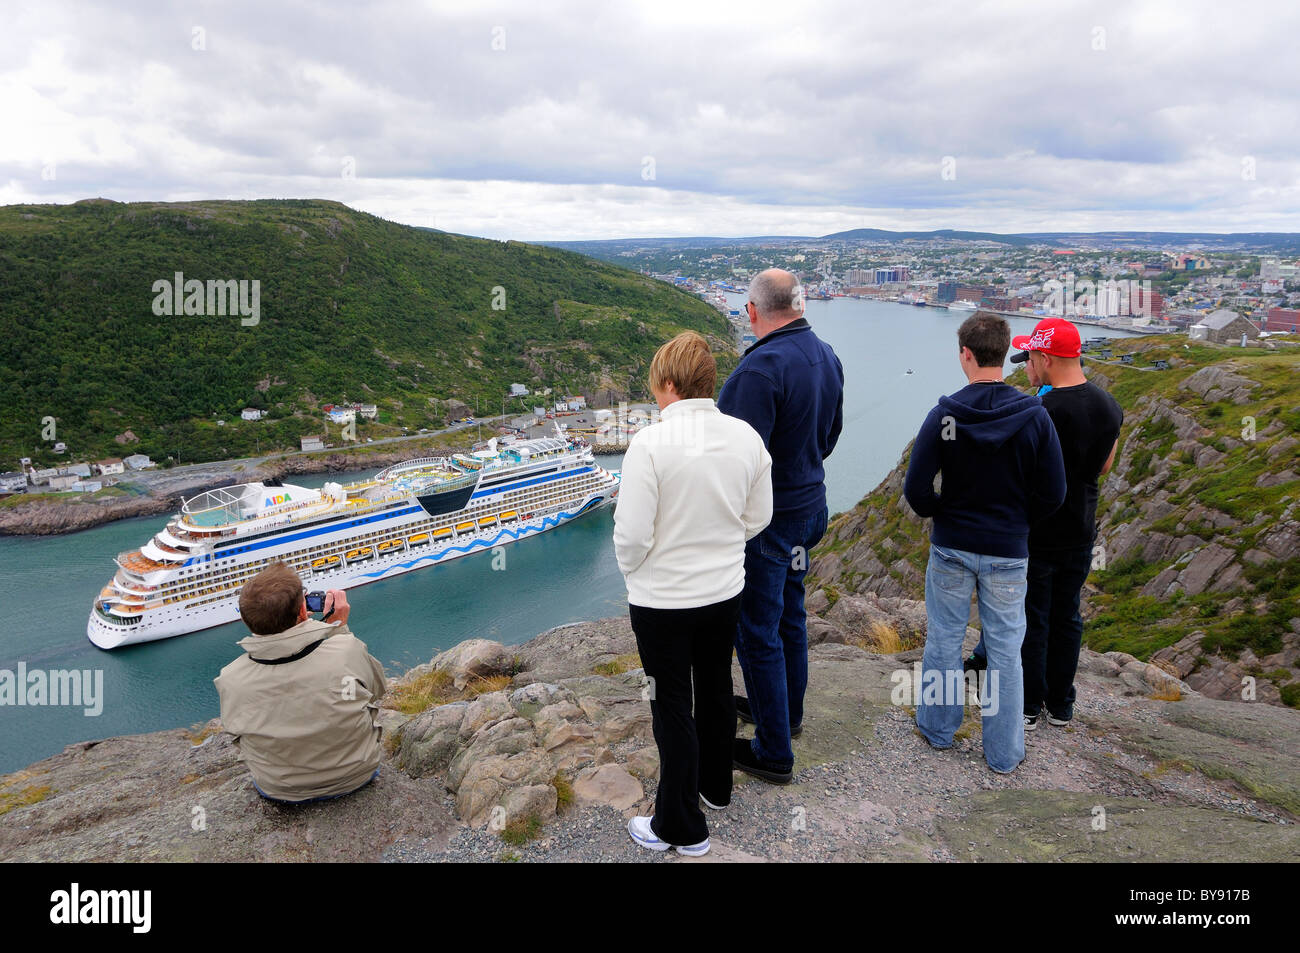 Locals And Tourist's Watching A Cruise Ship Entering St John's Stock Photo